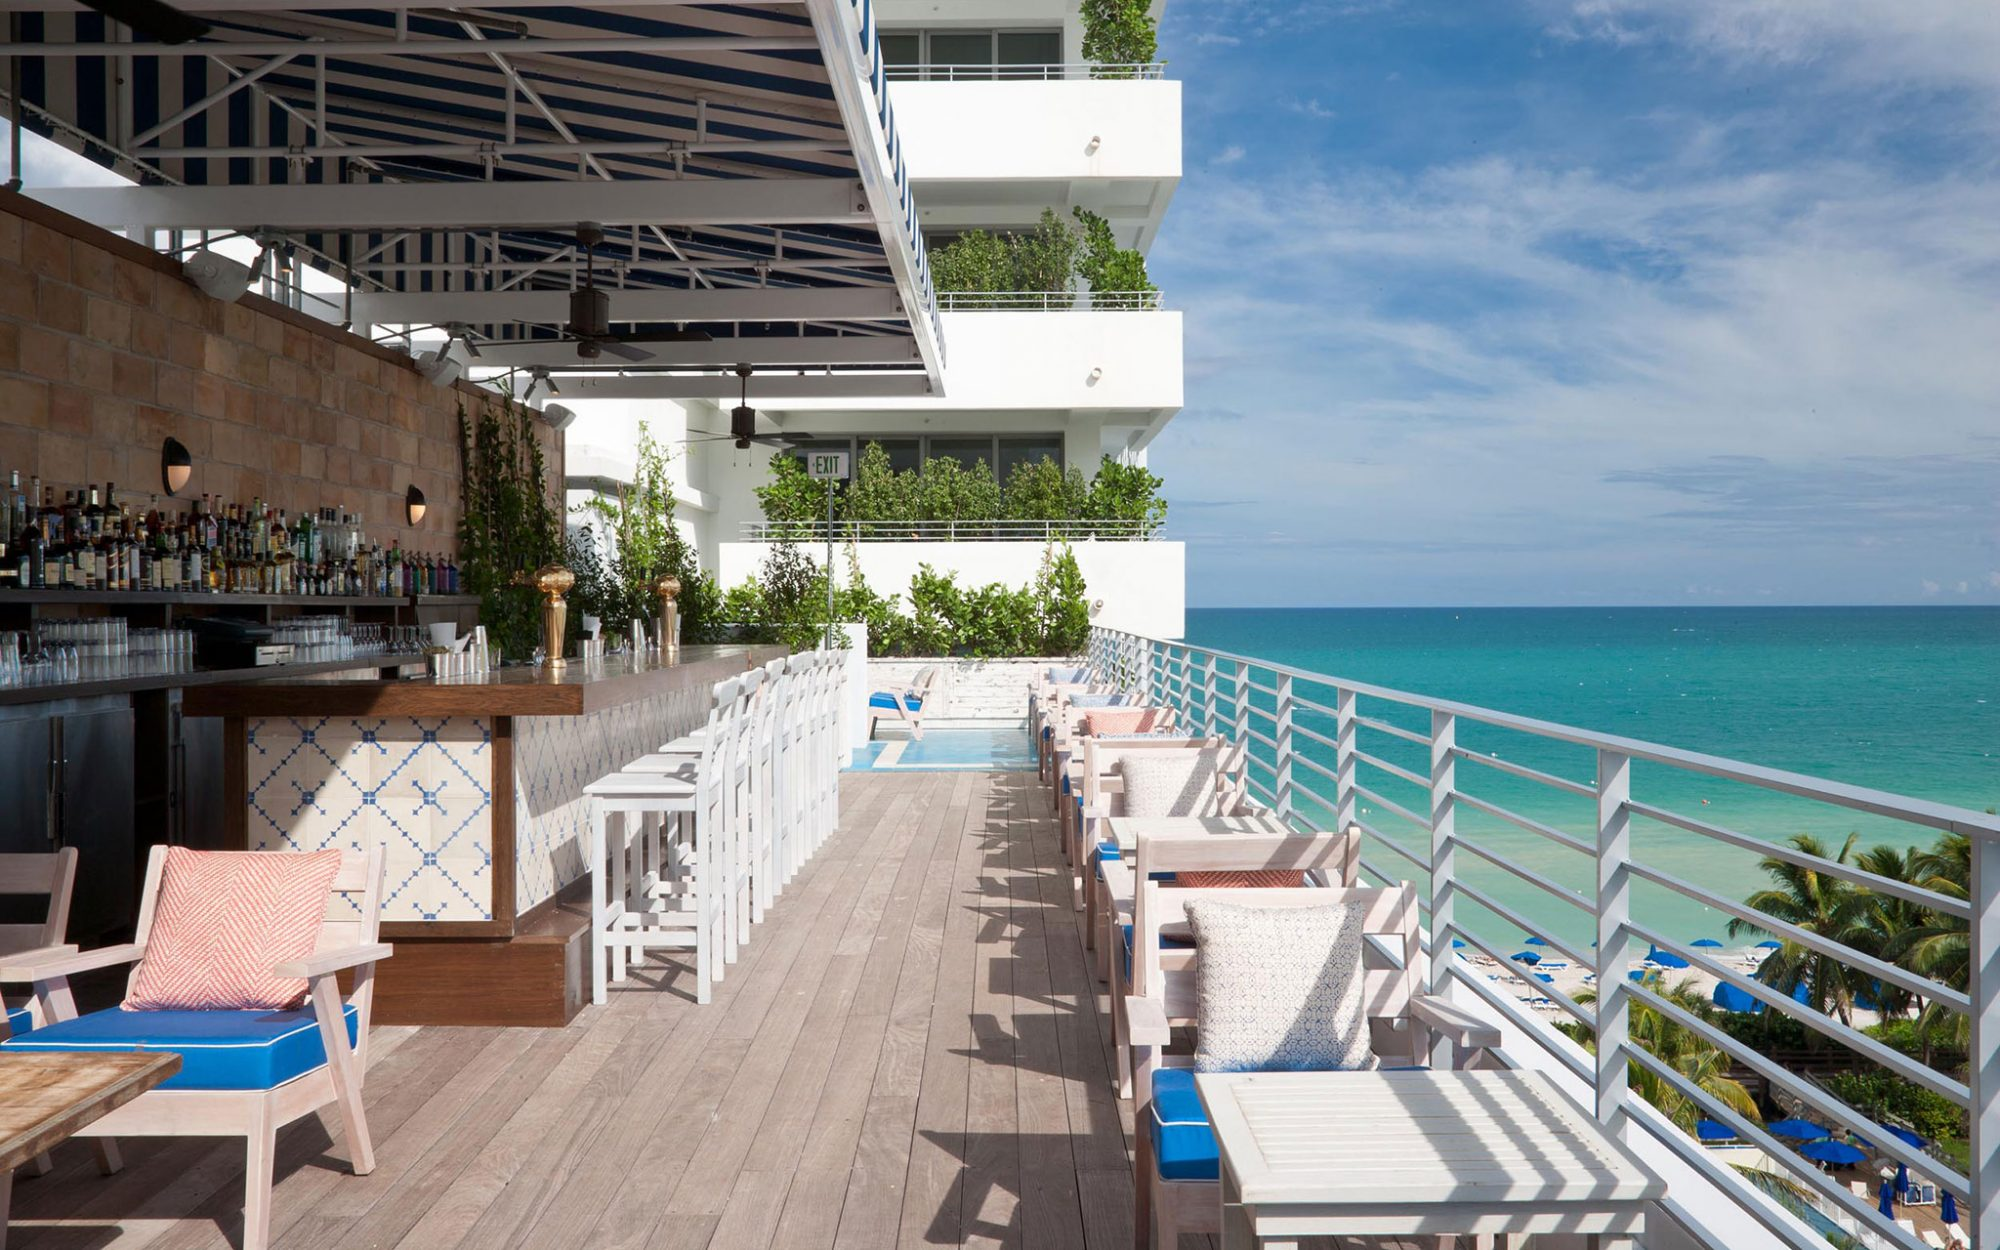 America's Coolest Rooftop Bars: Soho Beach House, Miami